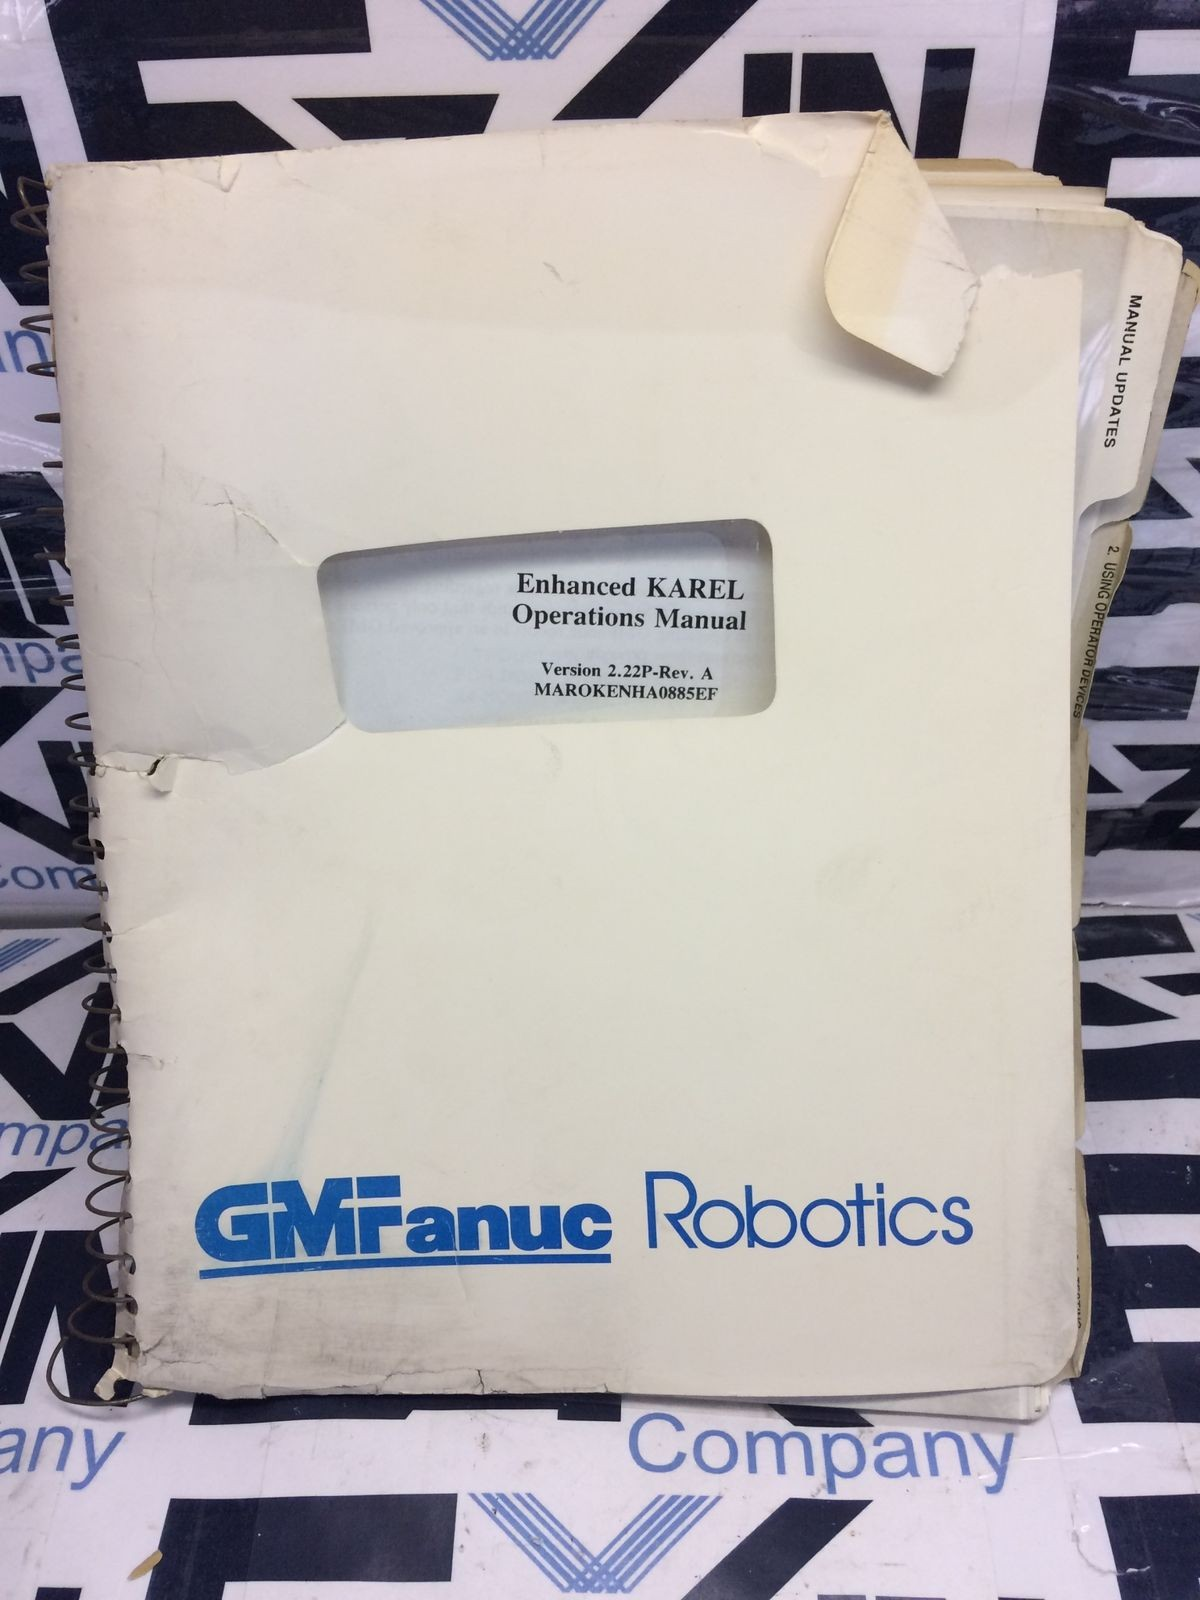 FANUC KAREL Operations Manual GMF Robotics V 2.22P-REV. A